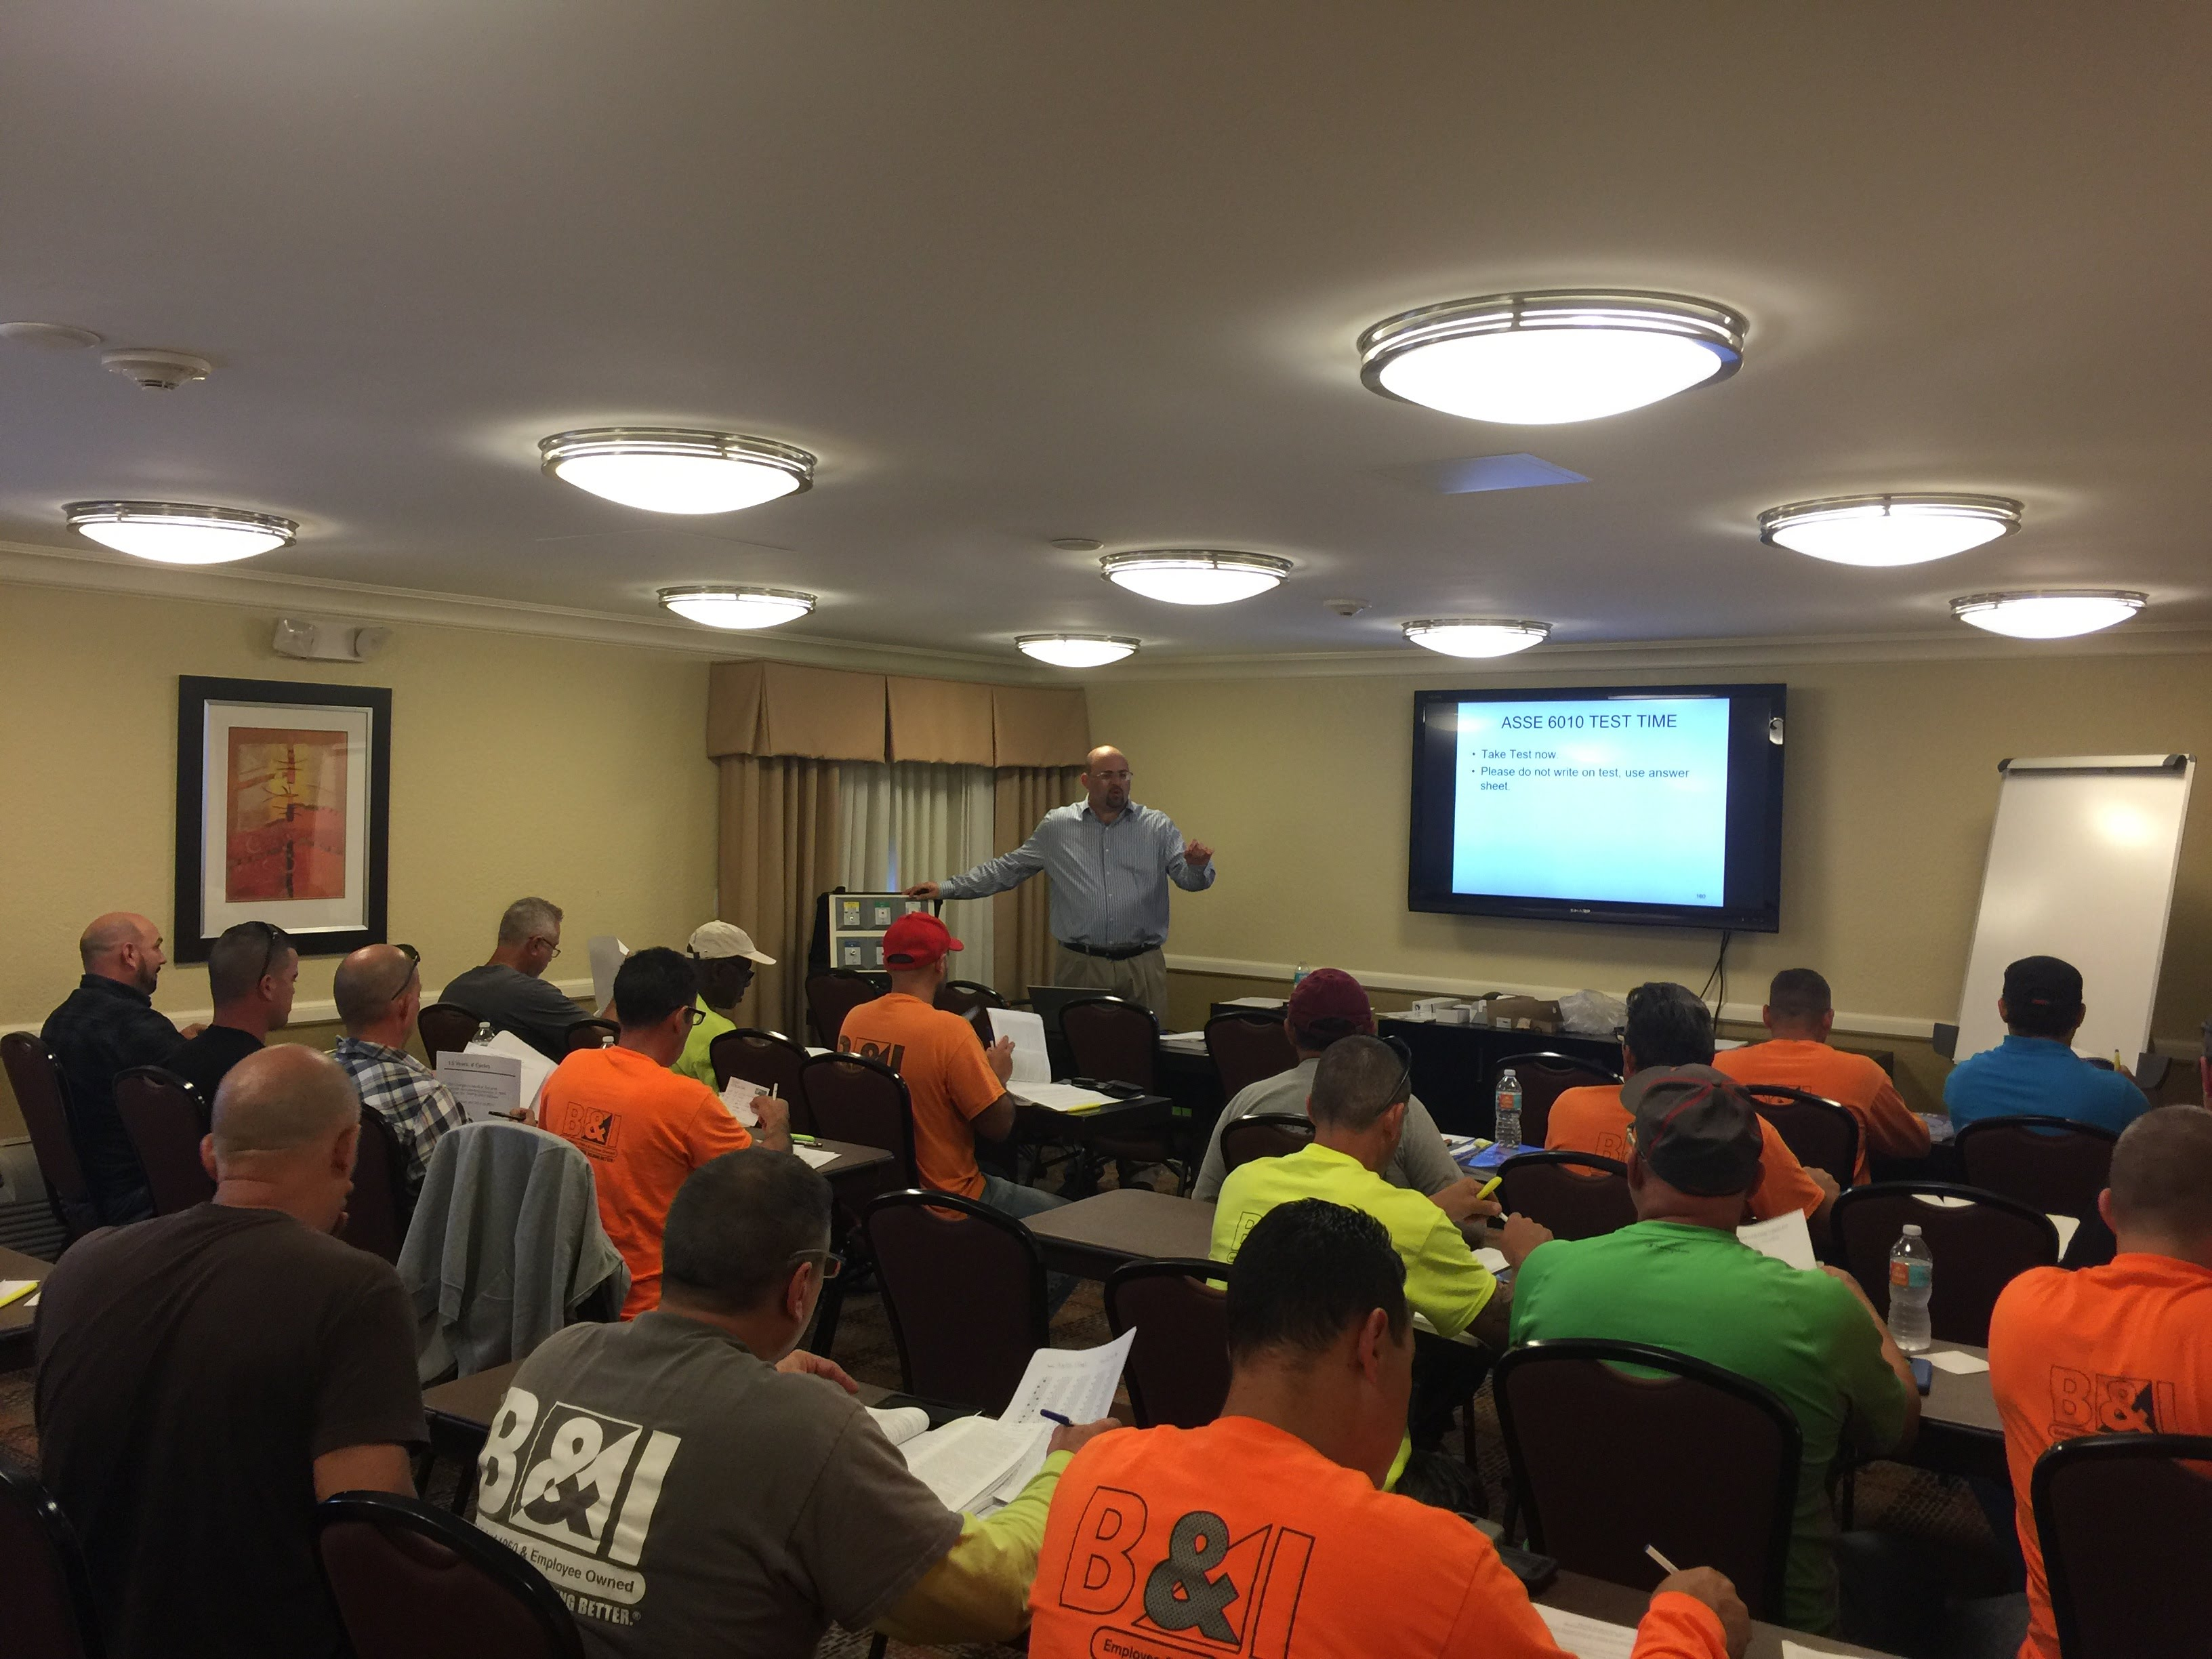 Instruction and seminars for Maintenance personnel, Installers, Architects and Specifiers, Inspectors, and Designers